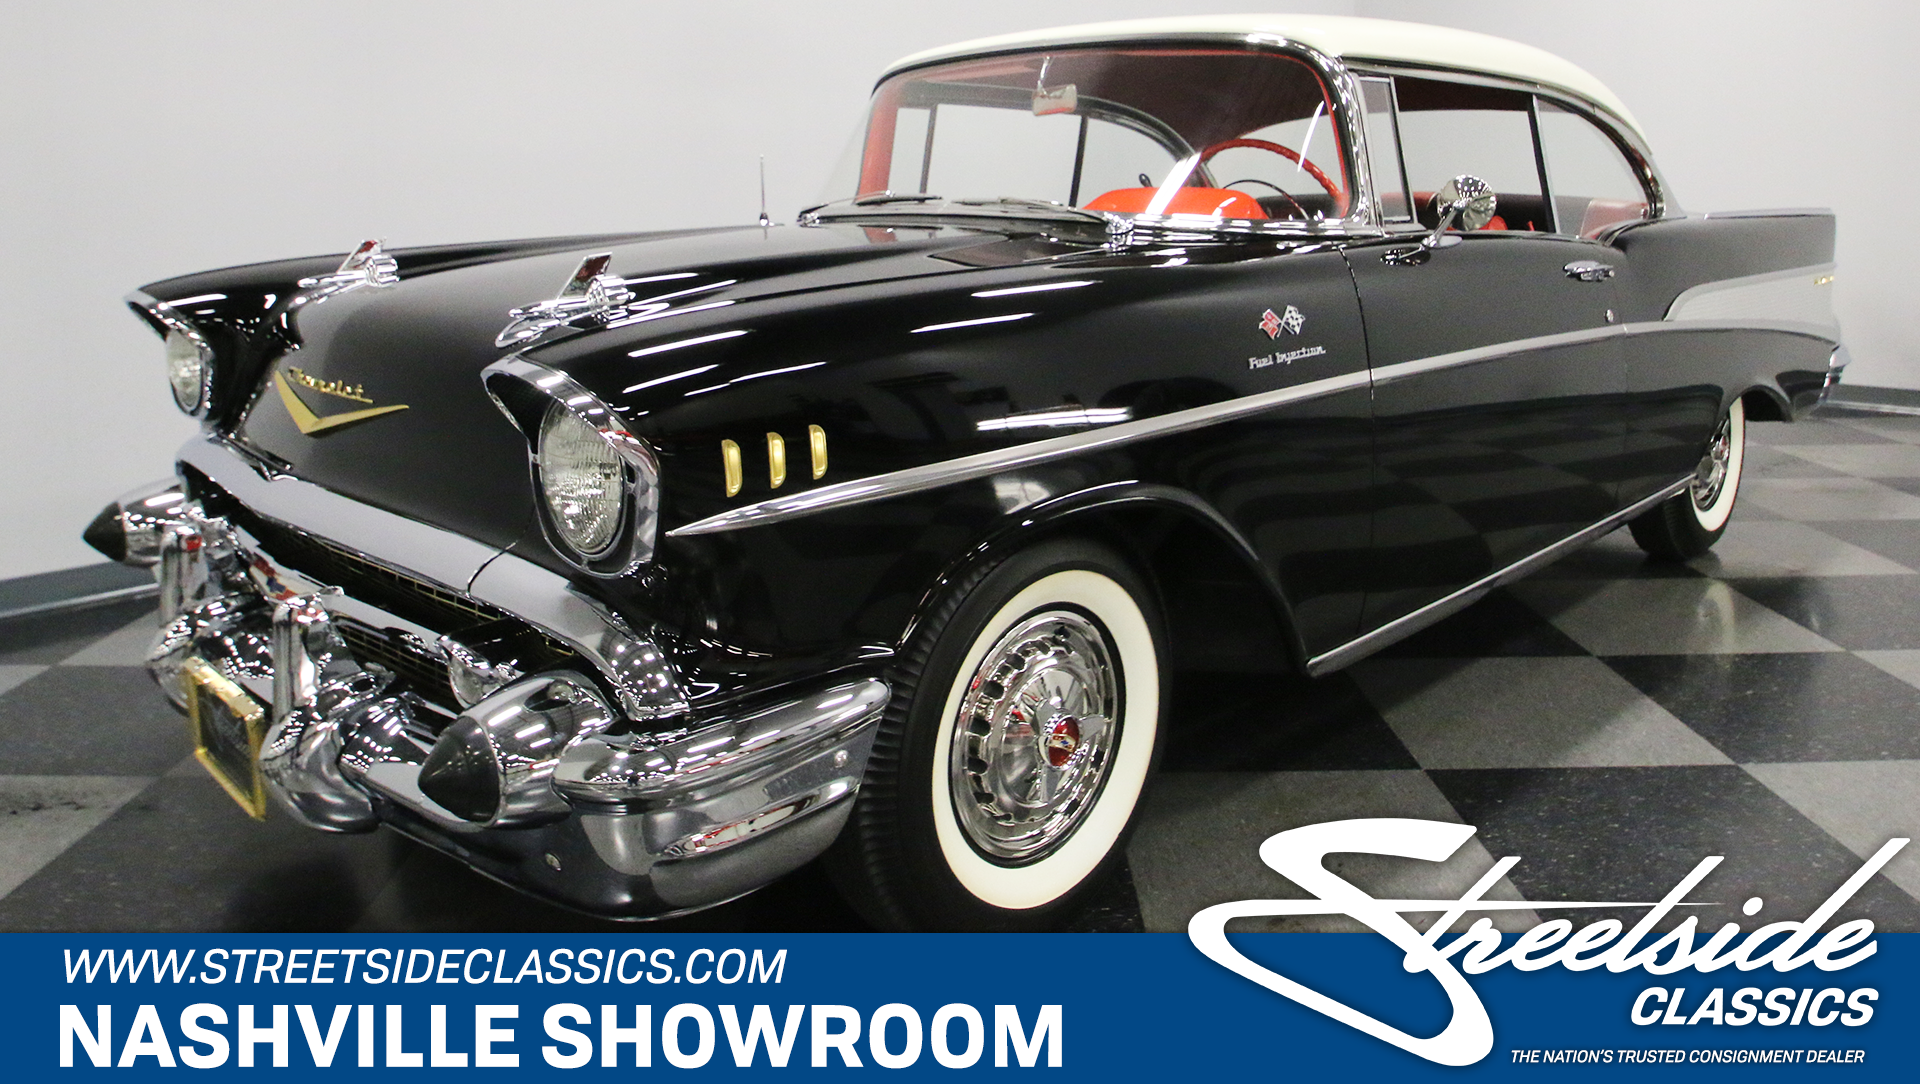 1957 Chevrolet Bel Air Streetside Classics The Nations Trusted Chevy Vin Tag Decoder Play Video